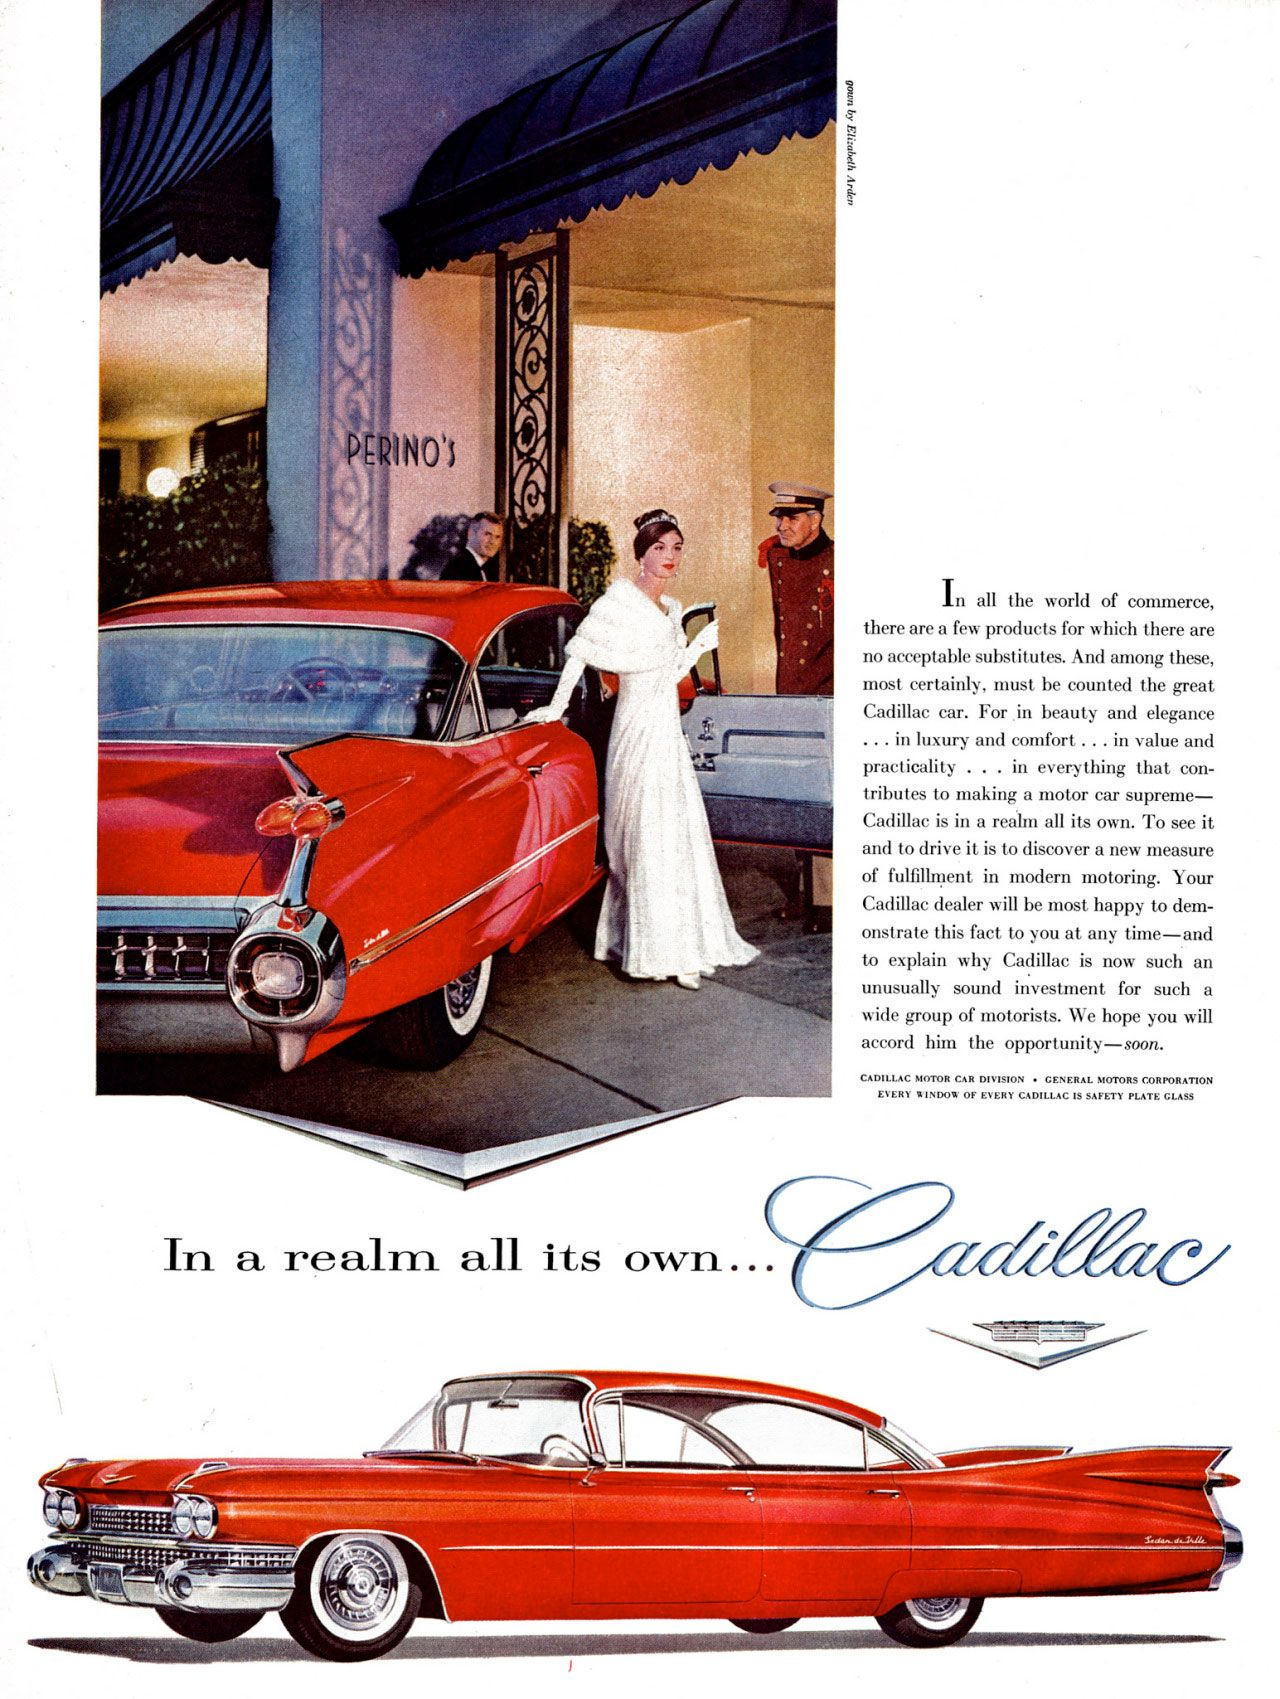 In a realm all its own... Cadillac.